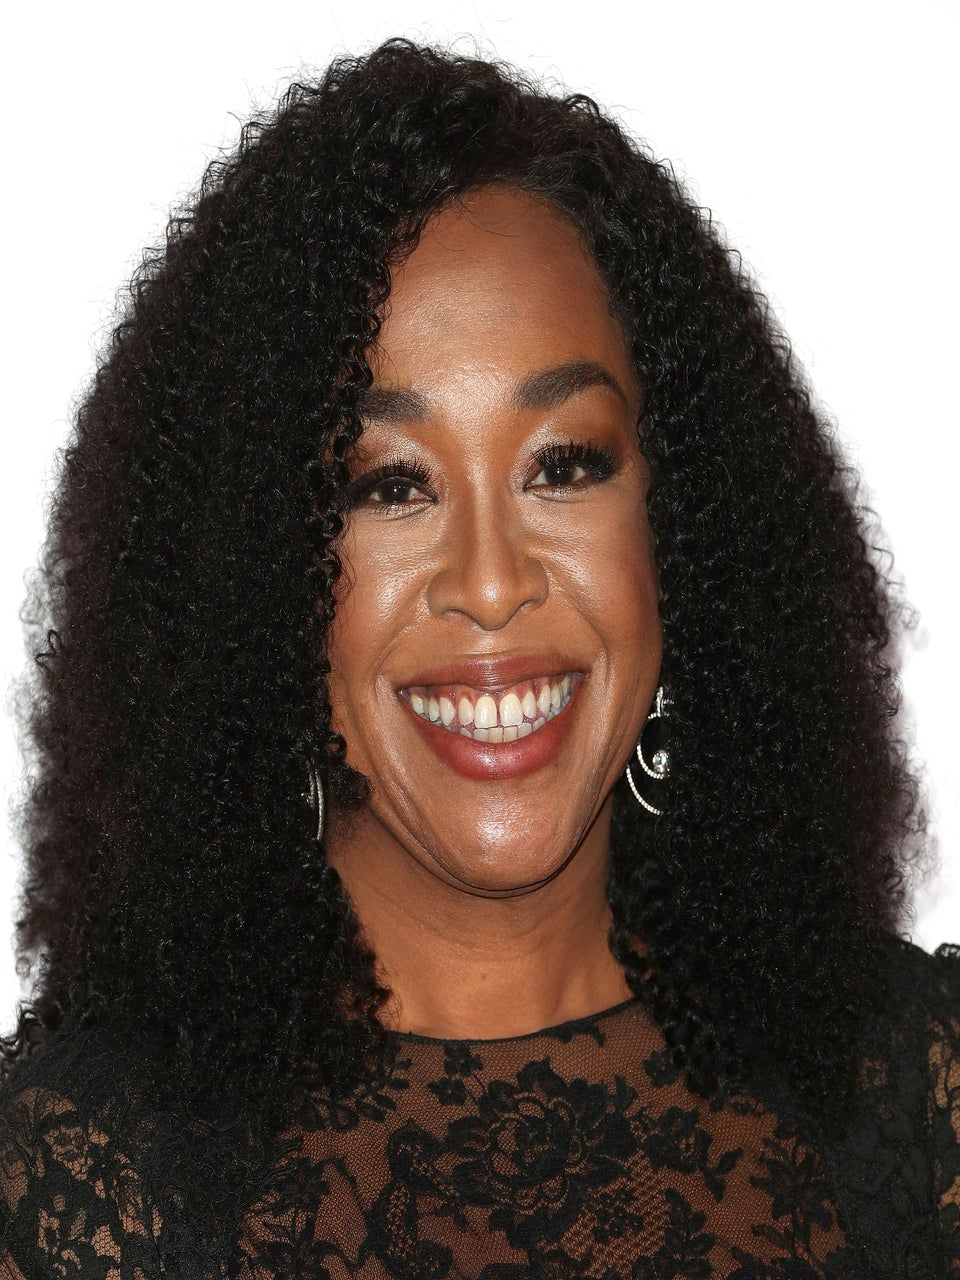 Shonda Rhimes Dishes On The One Hair Product That Keeps Her Tresses Flourishing